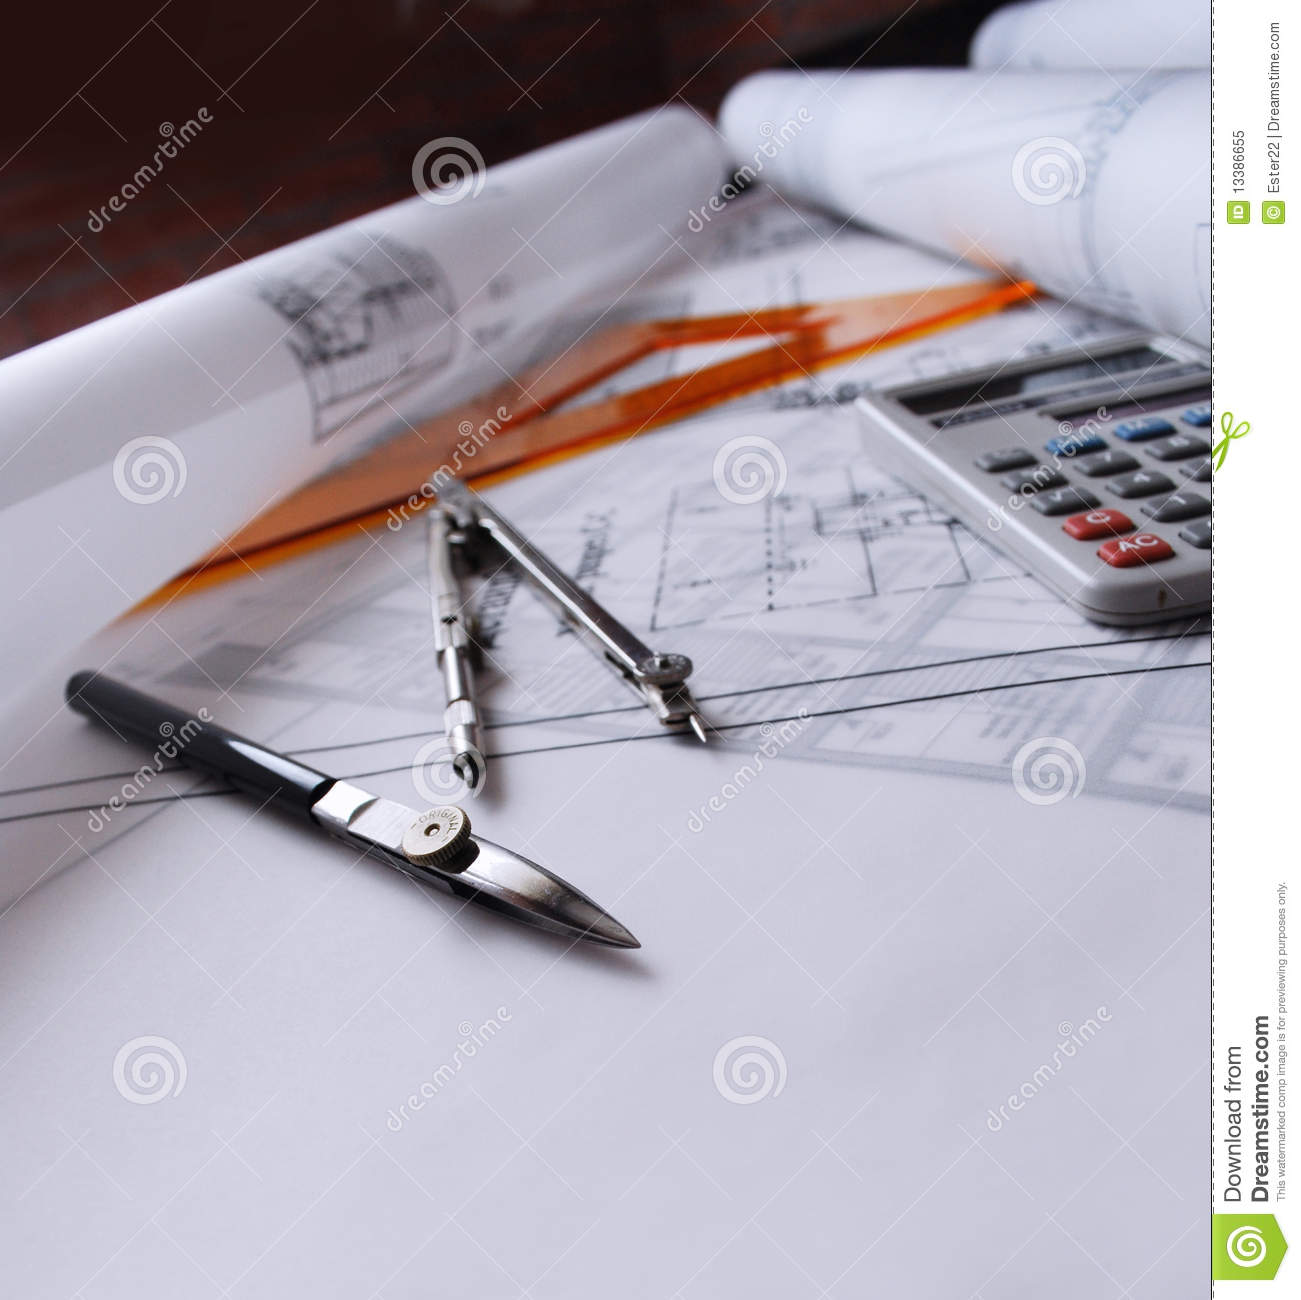 Architecture Drawing Instruments I To Design Ideas